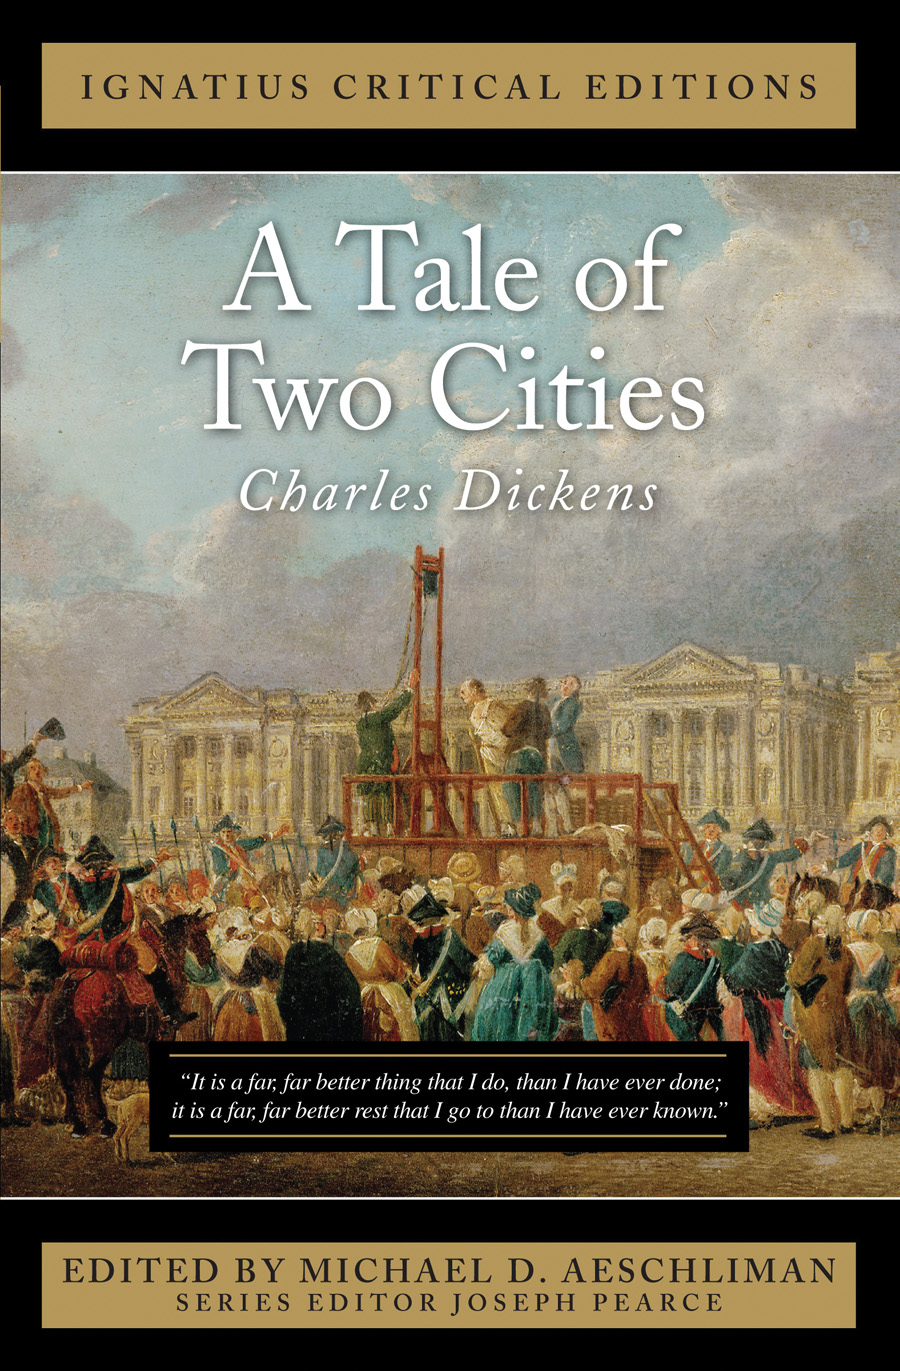 a tale of two cities structure Plot (structure) the immense popularity of a tale of two cities lies in dickens' ability to simultaneously and graphically structure the revolution in france with the development of characters like dr manette, lucie, darnay.